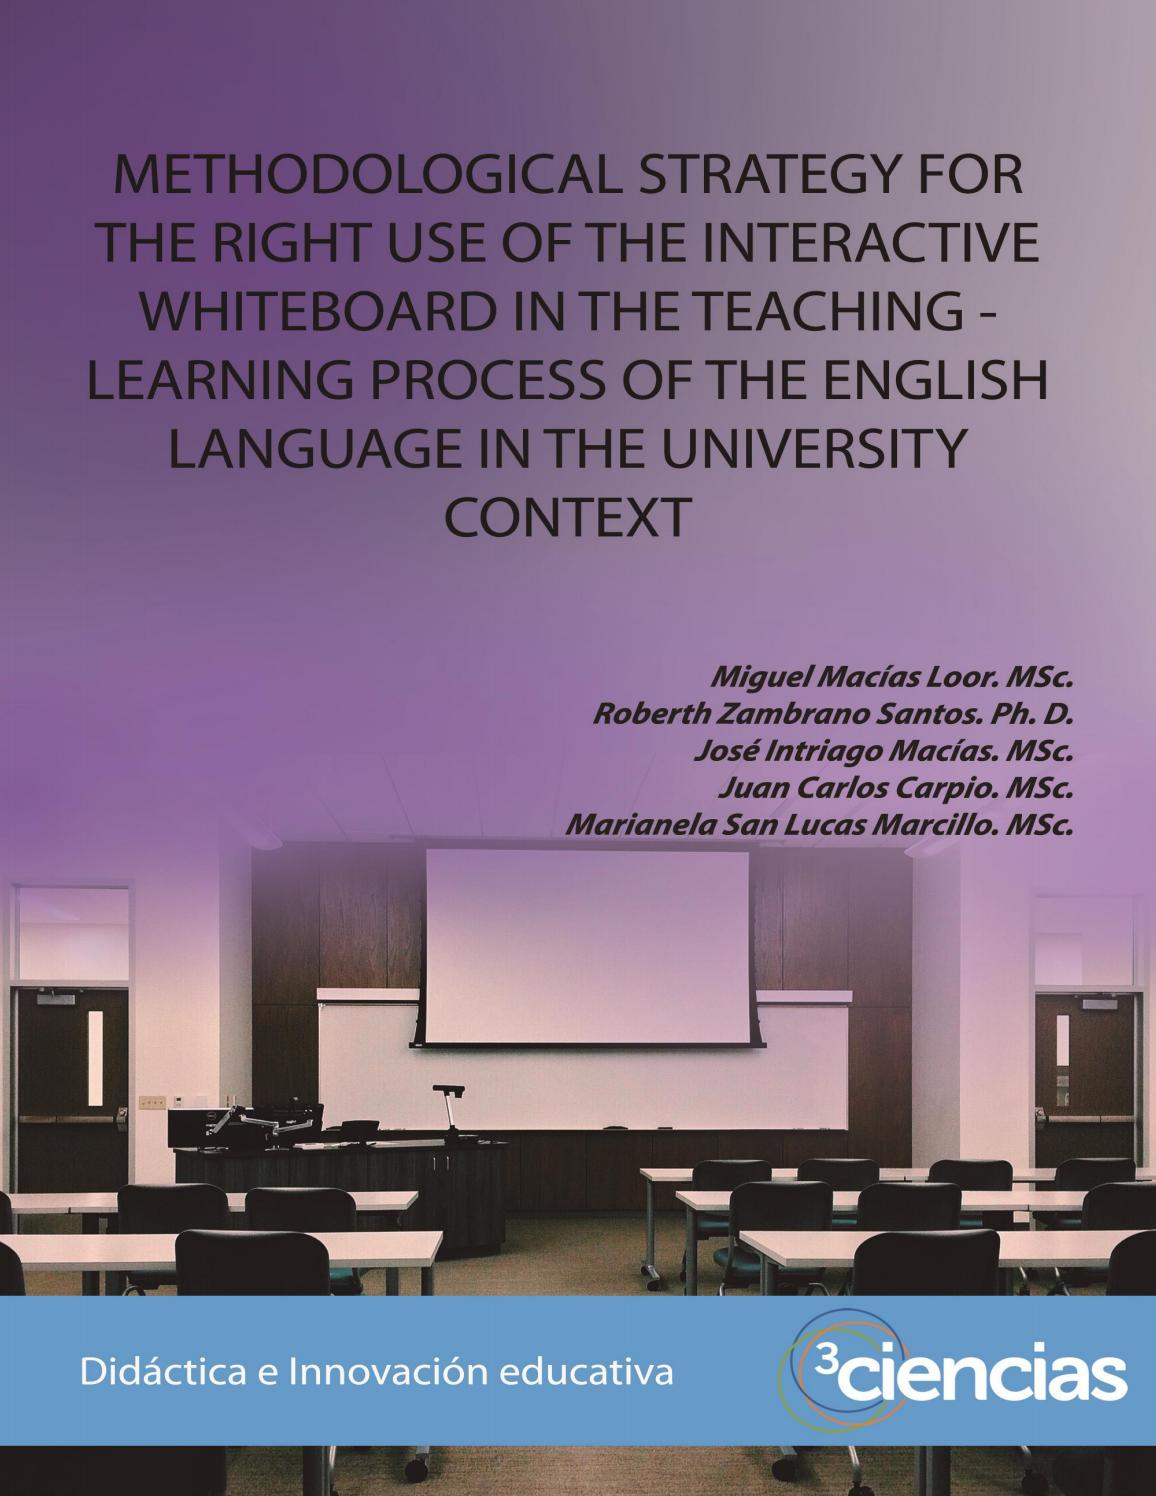 Methodological strategy for the right use of the interactive whiteboard by  Editorial Científica 3Ciencias - issuu